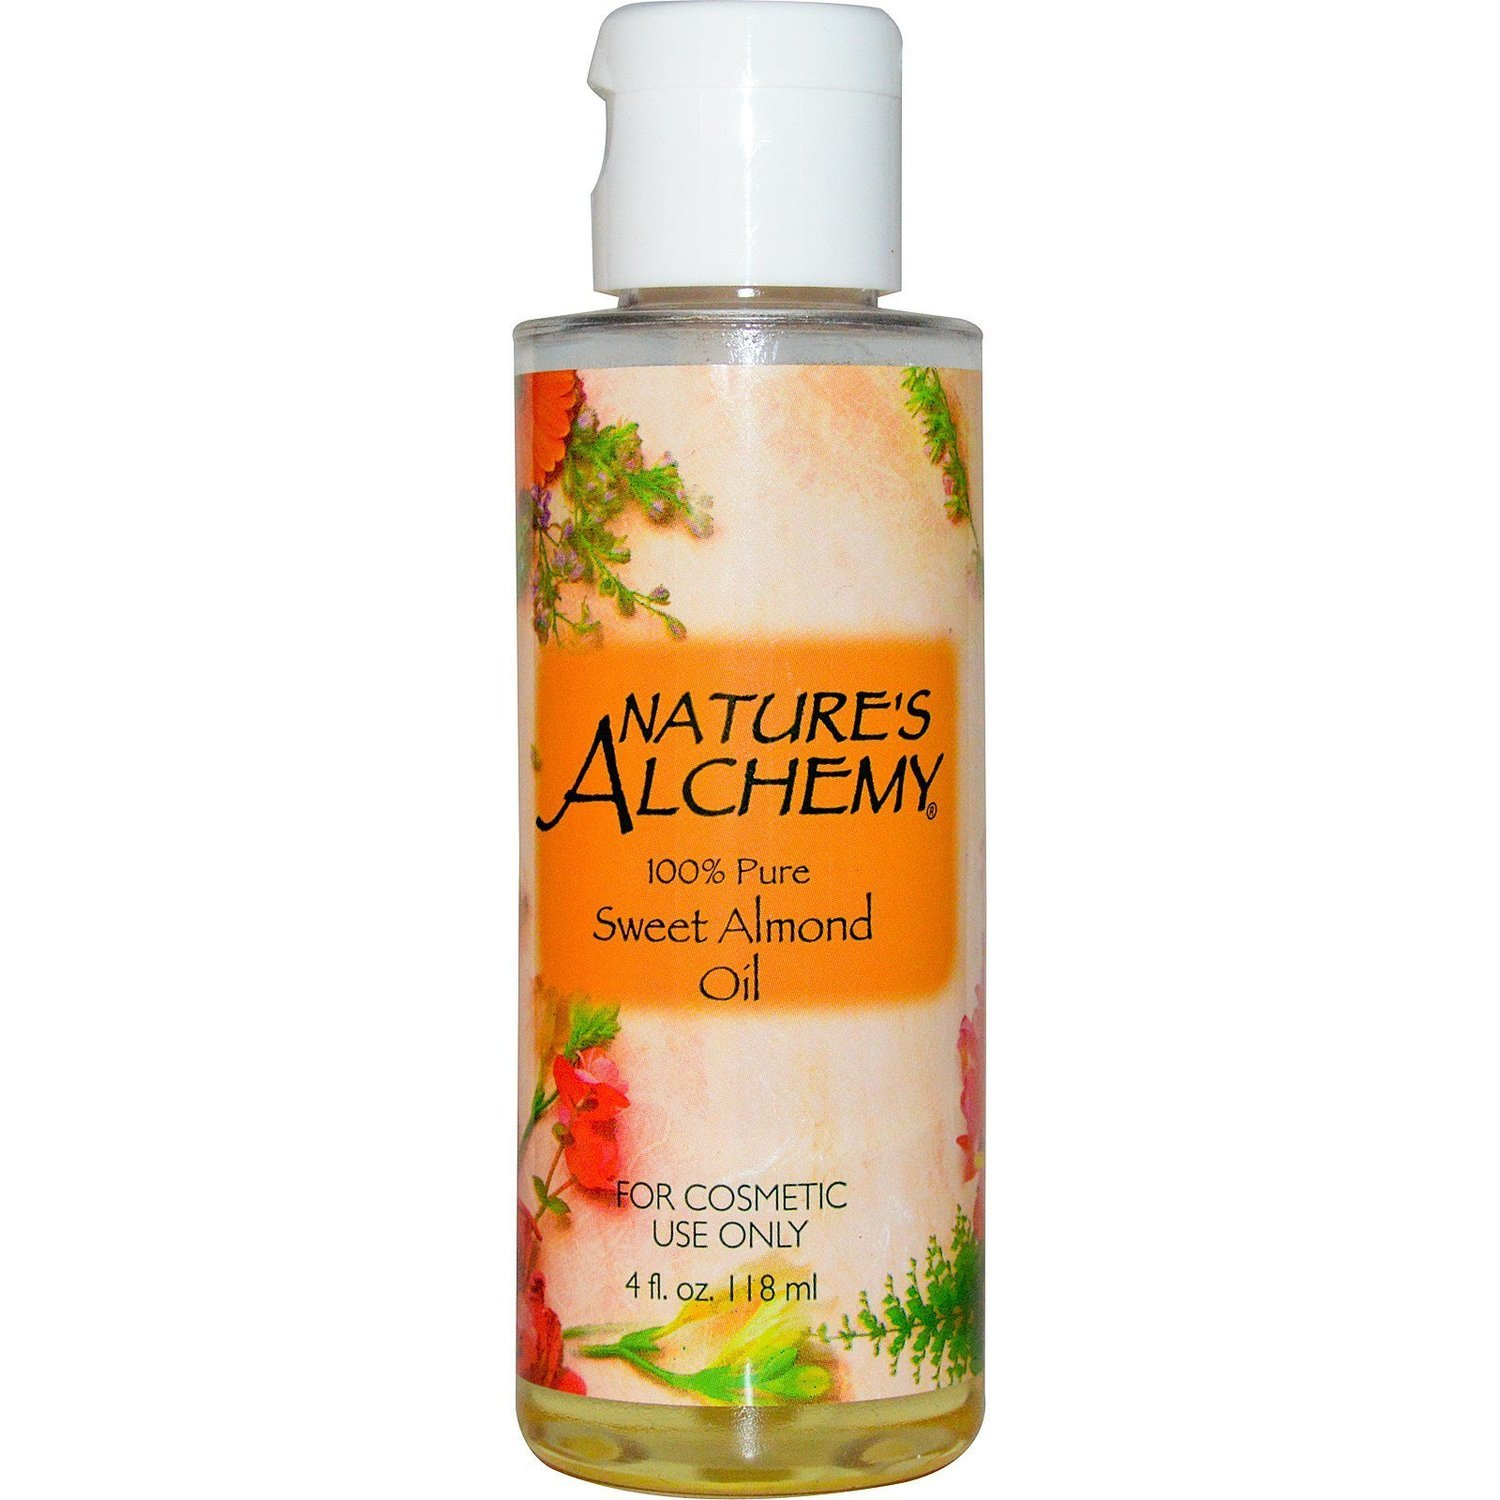 Nature's Alchemy  100% Pure Sweet Almond Oil